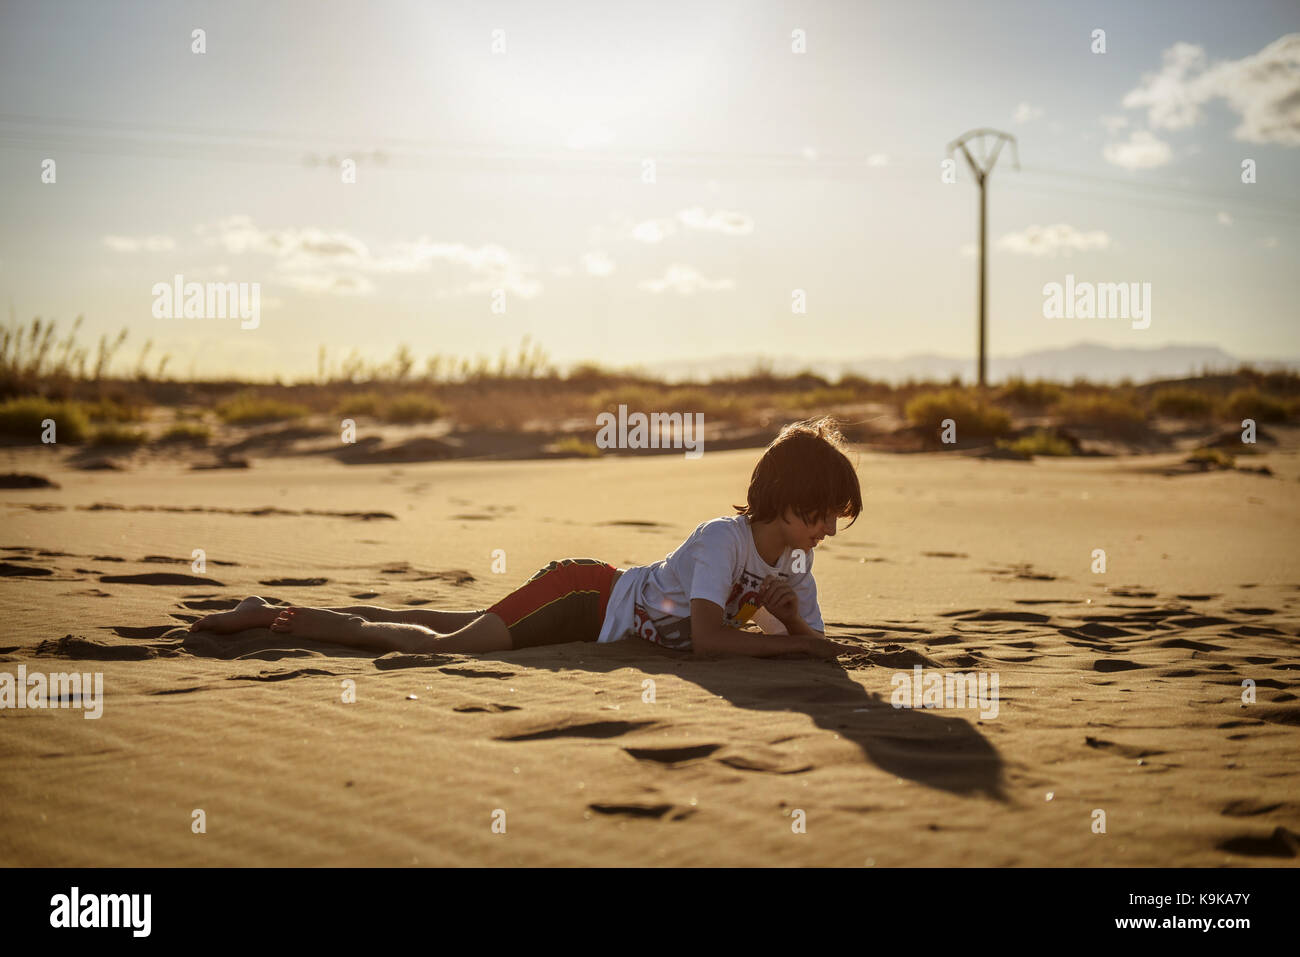 Relaxed boy in the sand at sunset - Stock Image